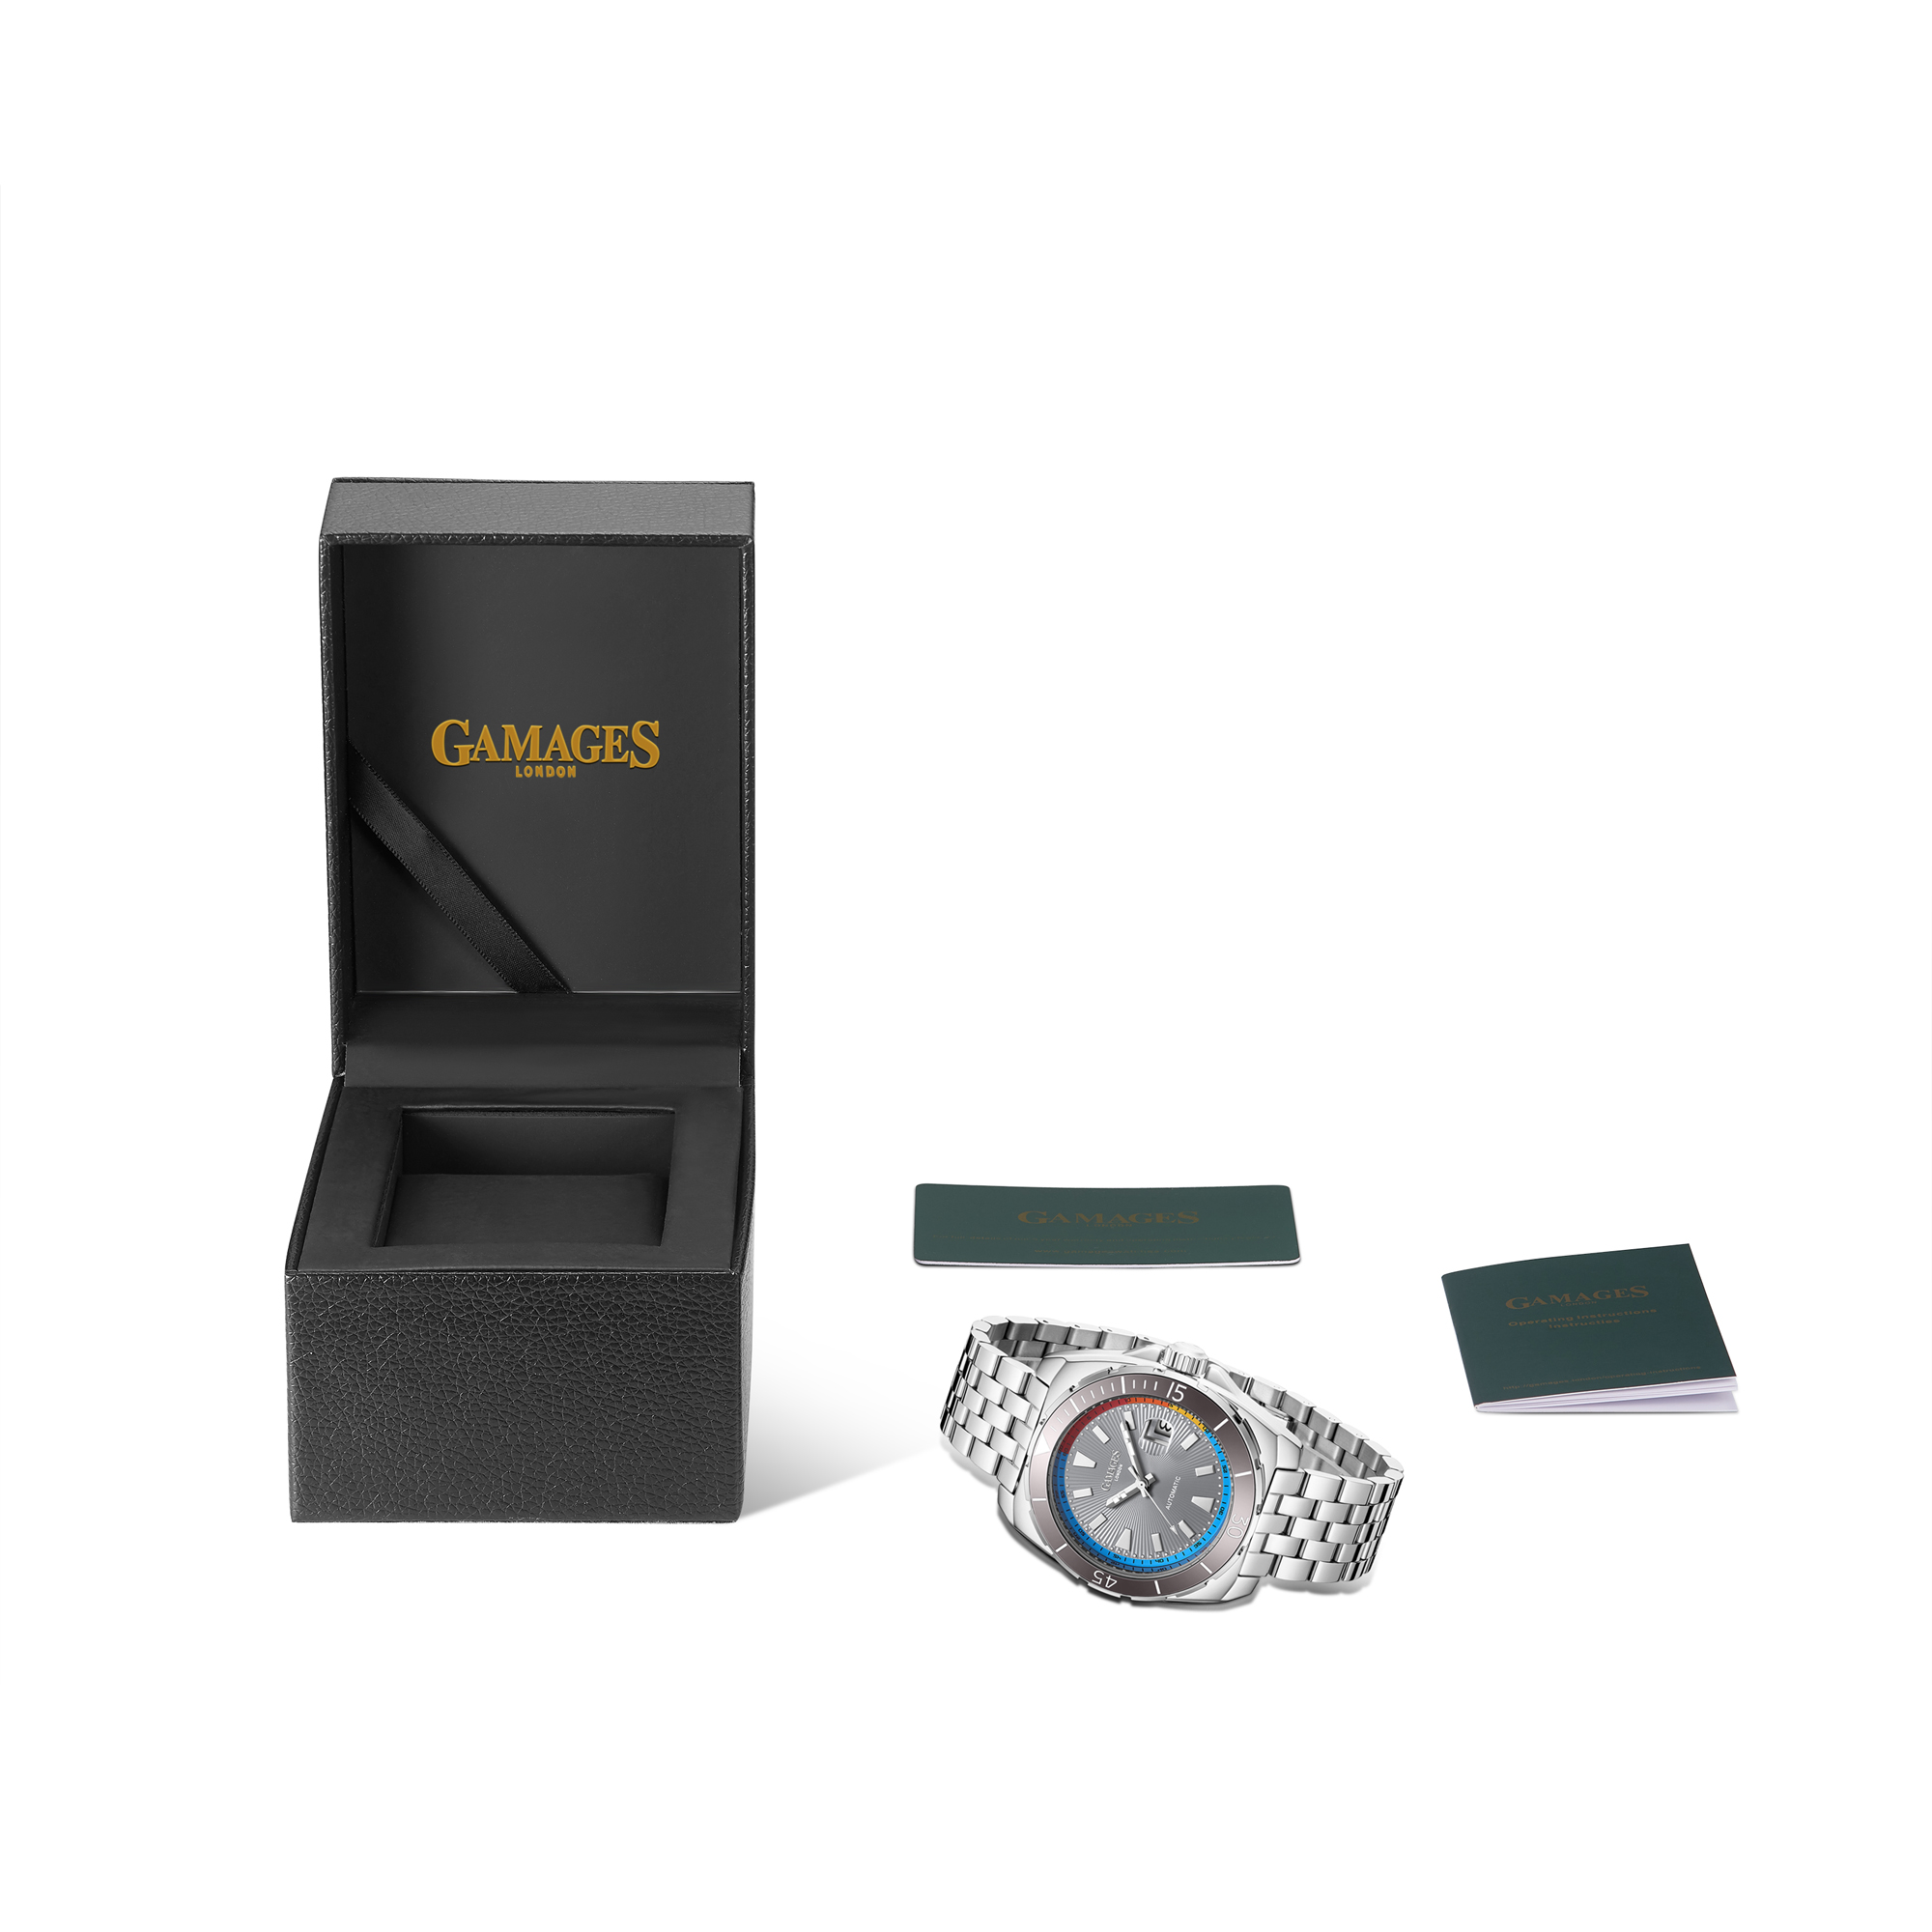 Limited Edition Hand Assembled GAMAGES Regal Automatic Steel – 5 Year Warranty & Free Delivery - Image 4 of 5